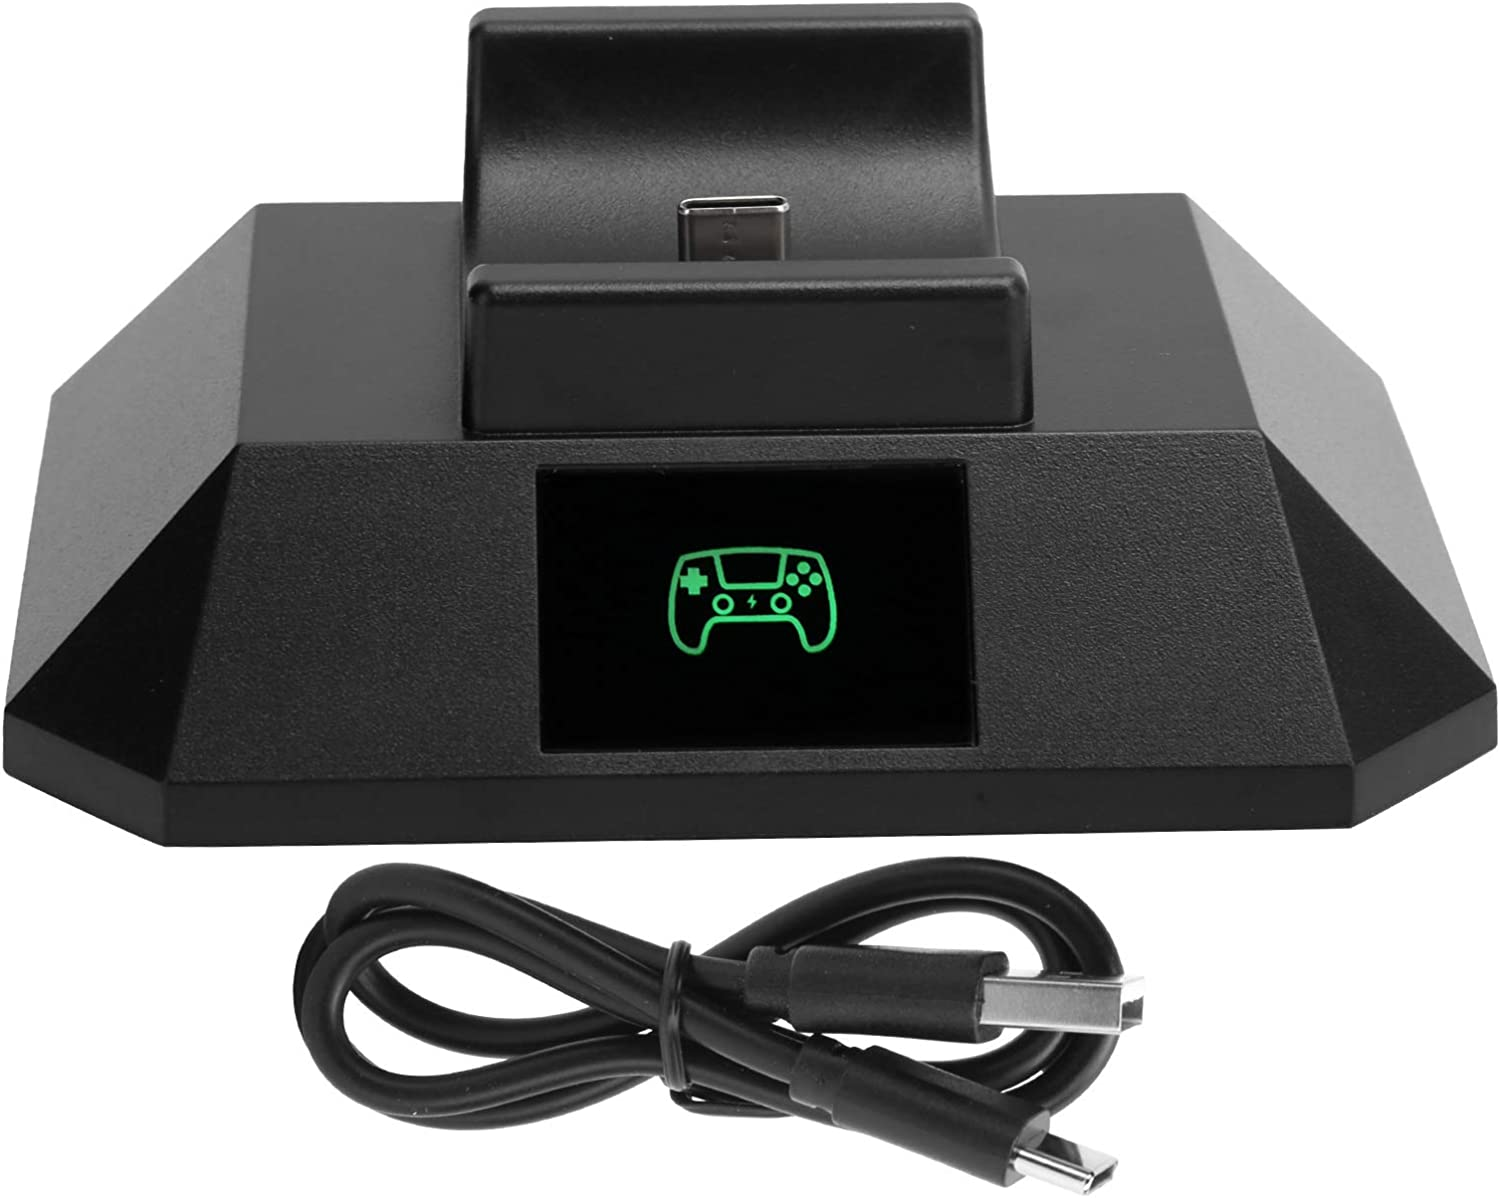 01 Latest item Gamepad Charging Dock Char Max 44% OFF Controller Charger Single